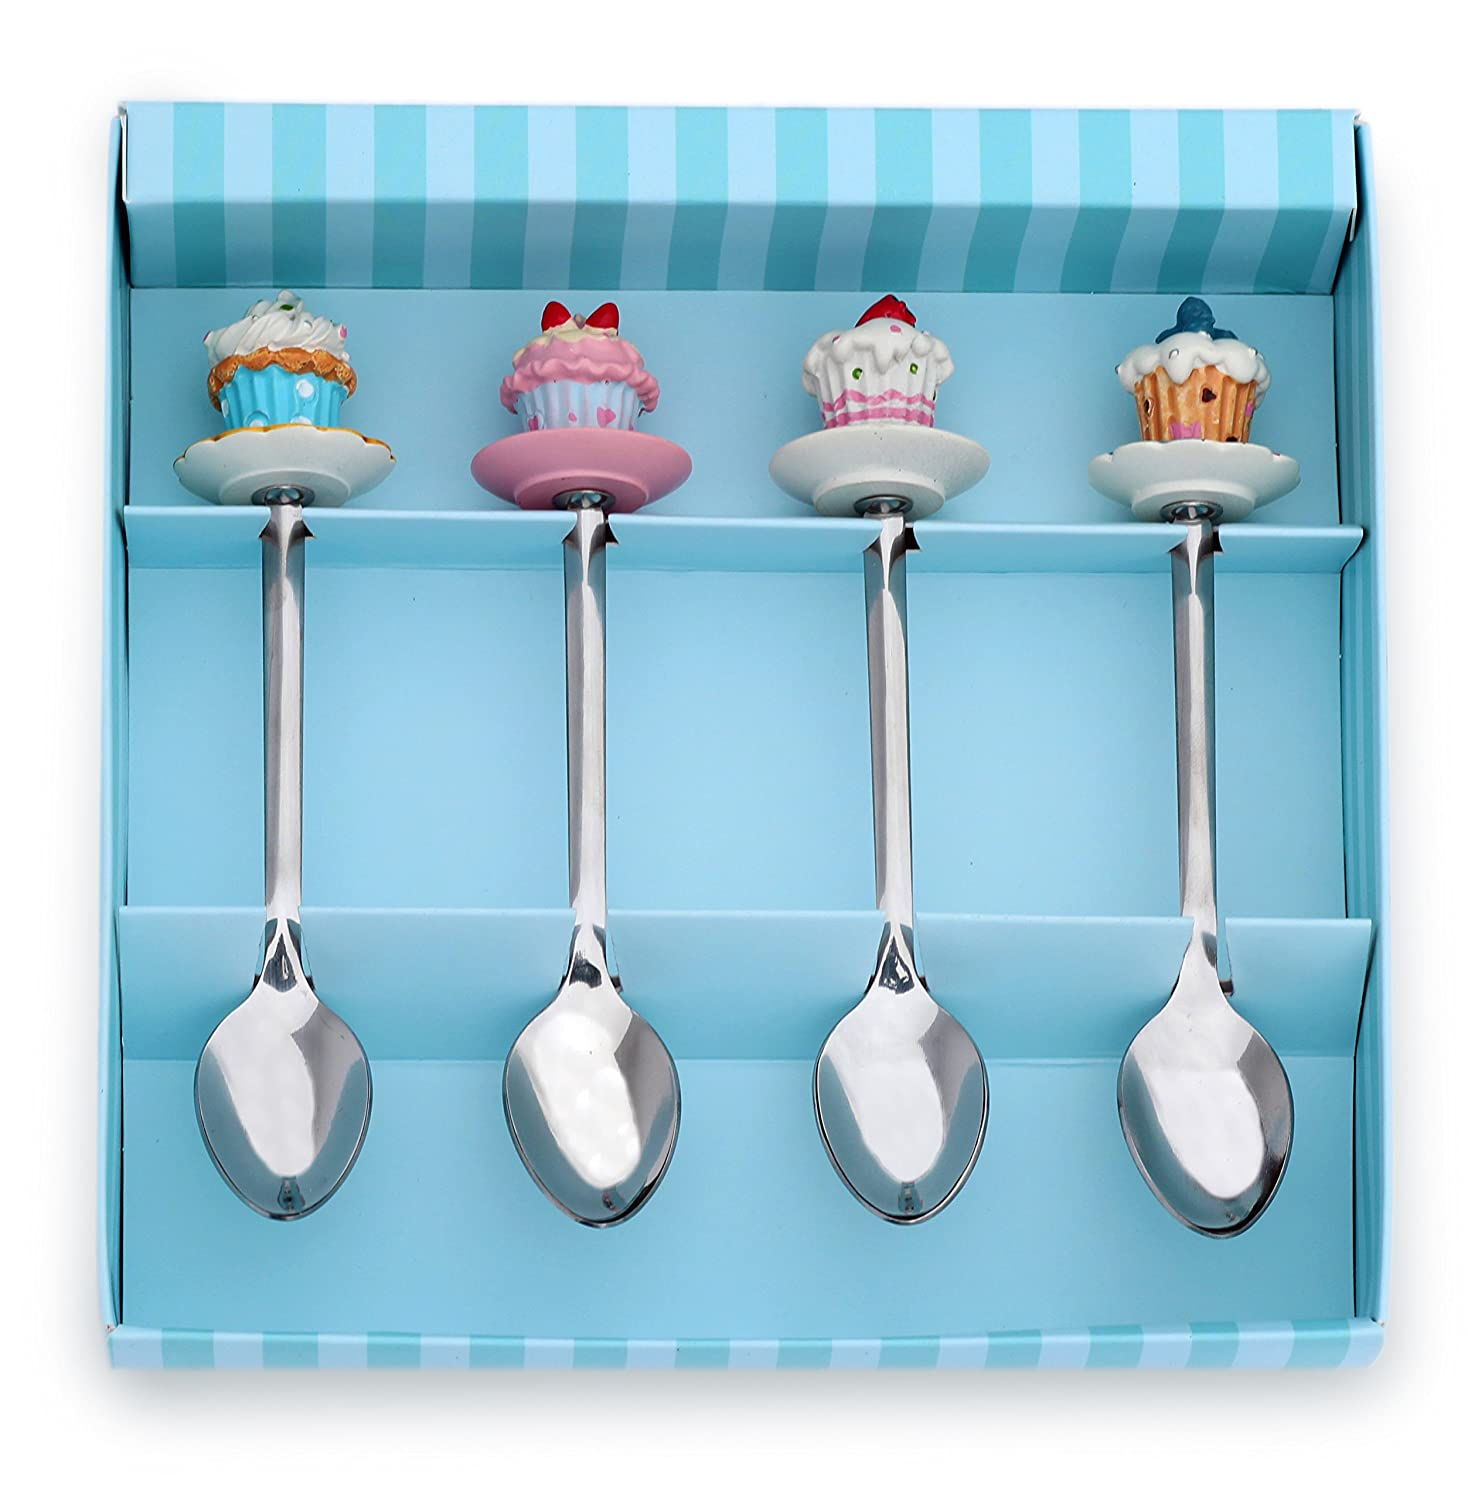 Meshberry Dessert Serving Spoons - Gift Set for Party & Birthday - Each Teaspoon With Souvenir Cupcakes - Ideal for Sweet Bar Appetizer